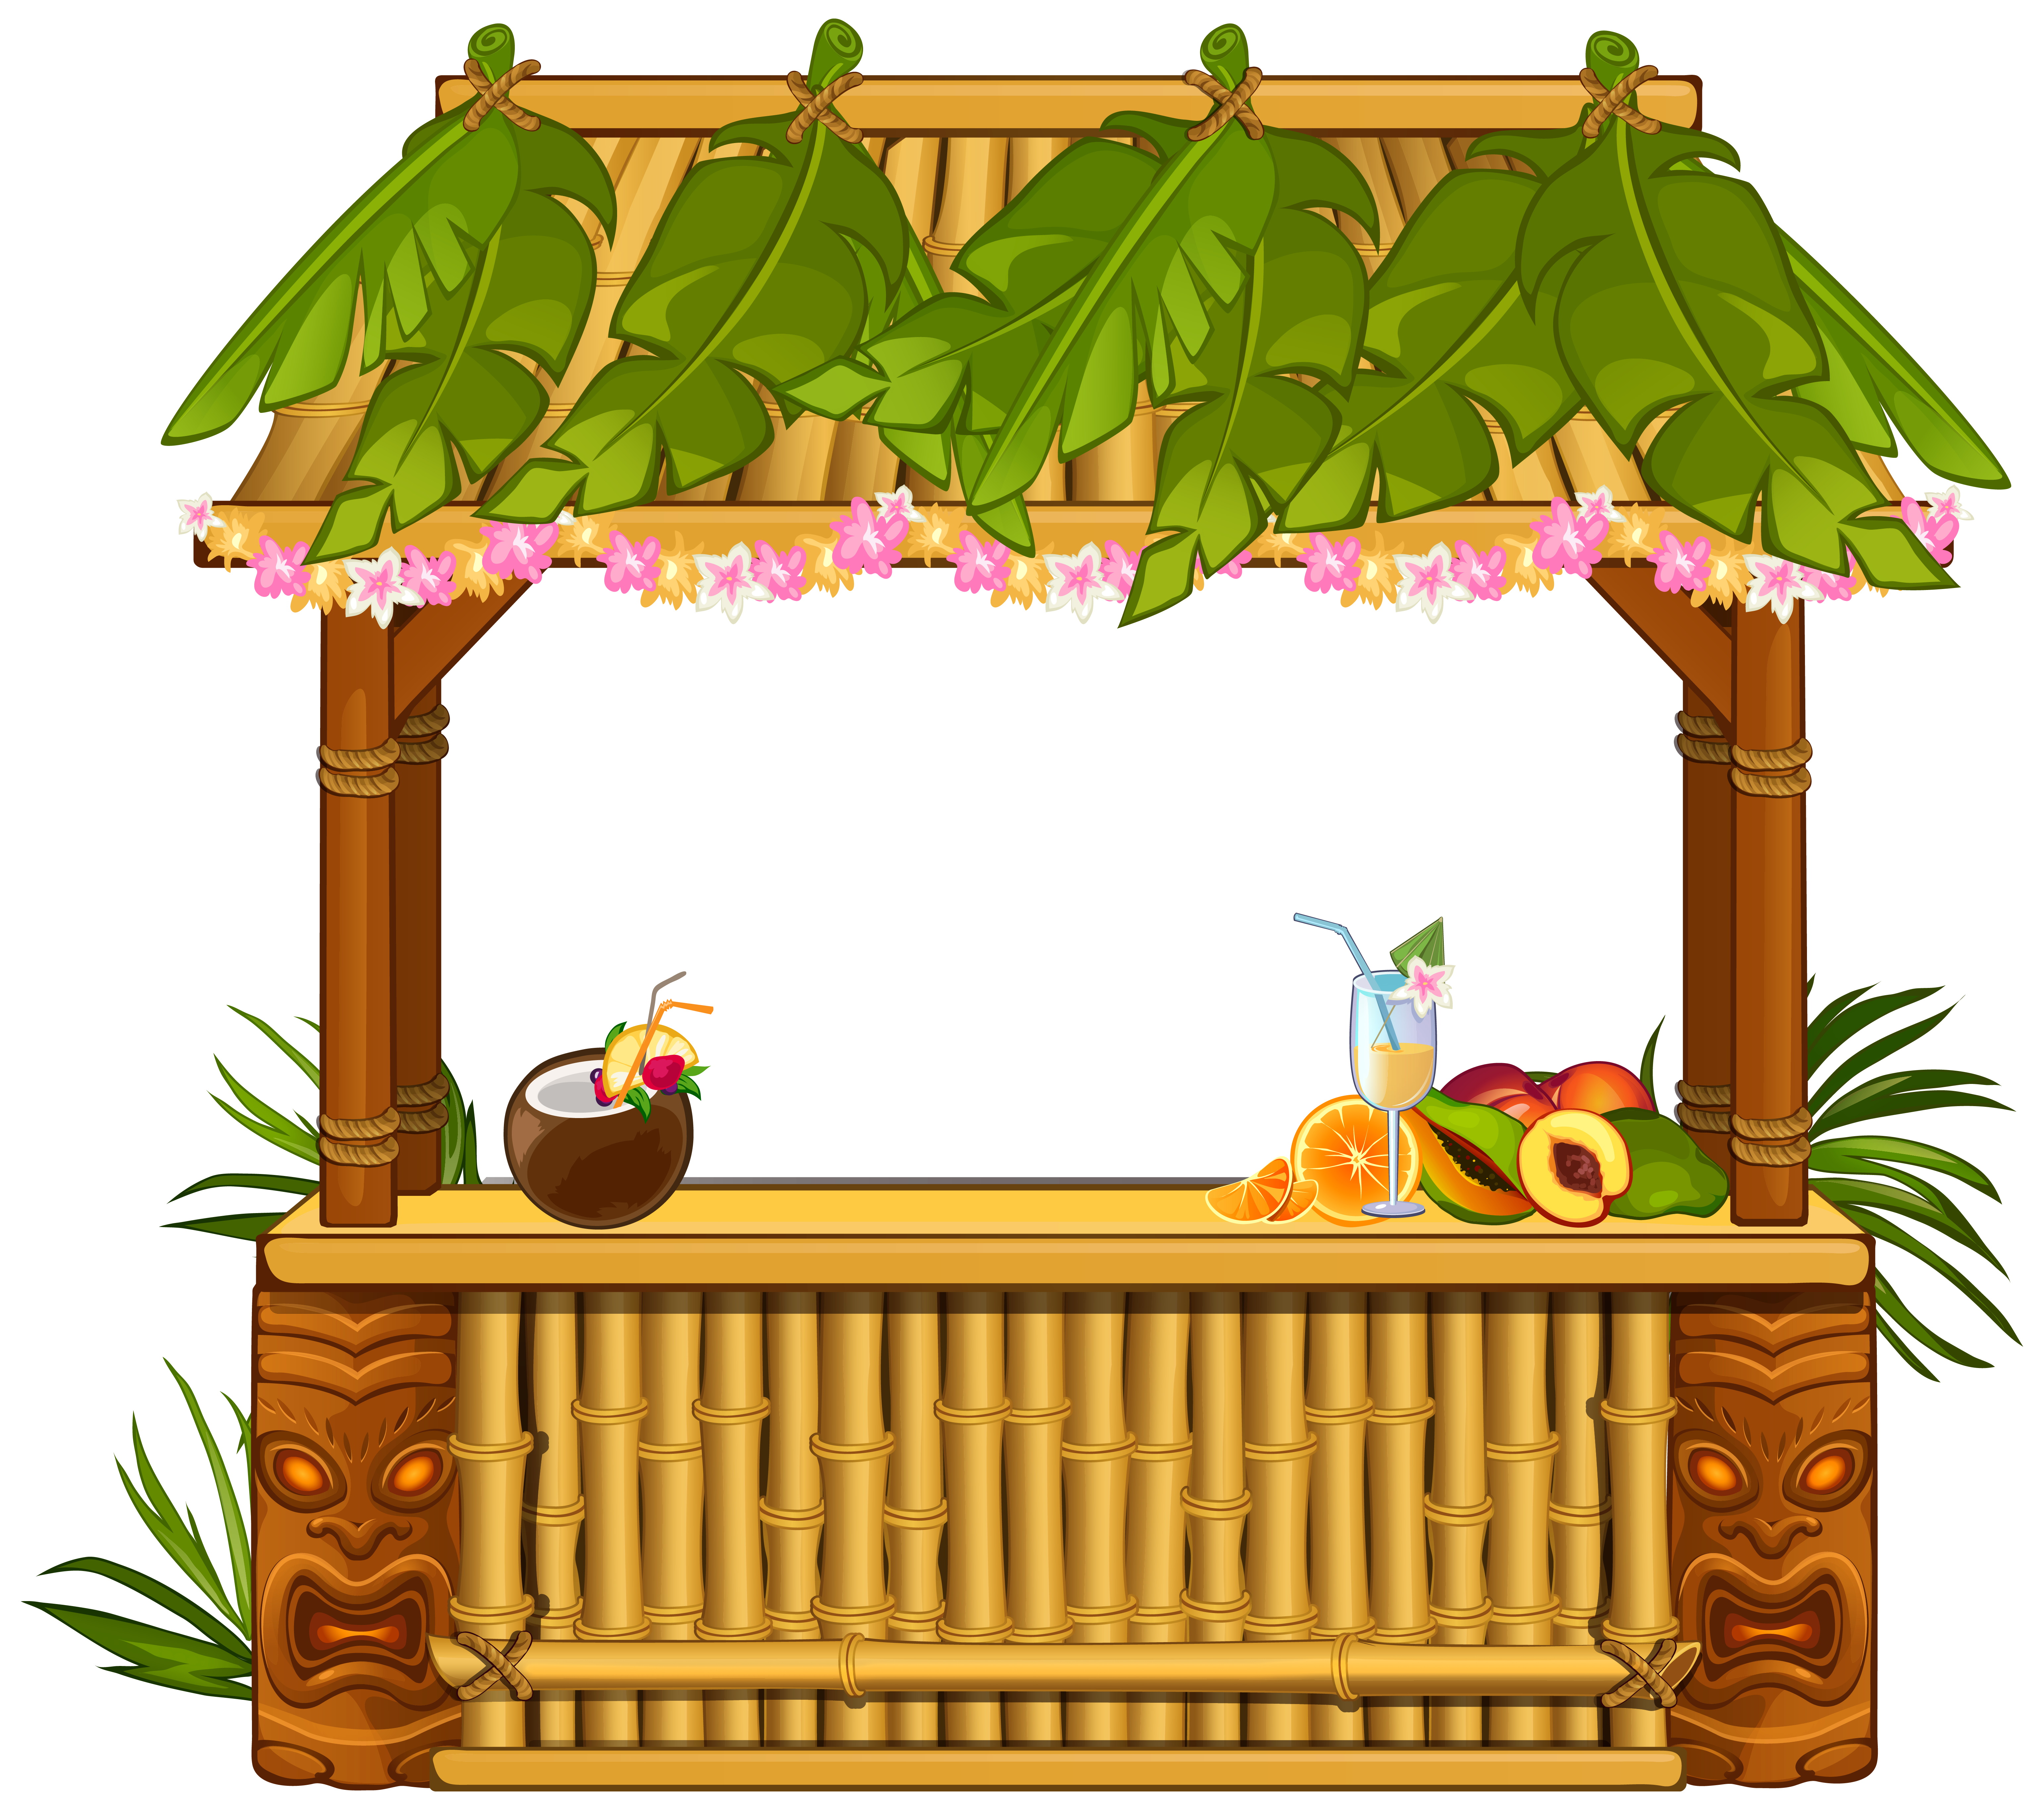 Png image gallery yopriceville. Bar clipart beach bar